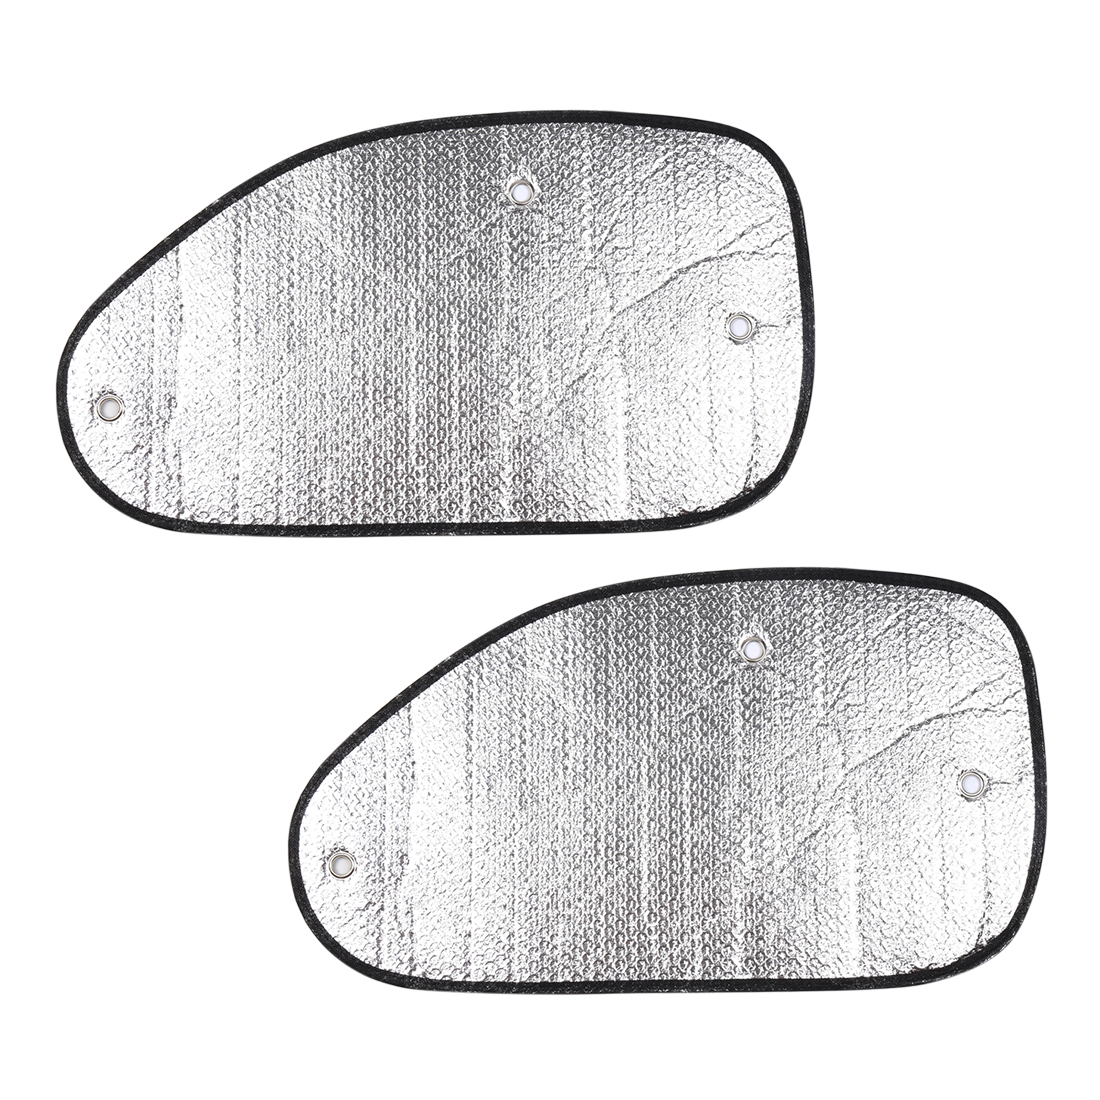 2 Pcs Silver Tone Foldable Side Window Sunshades Sun Visor Shield 58 x 34cm